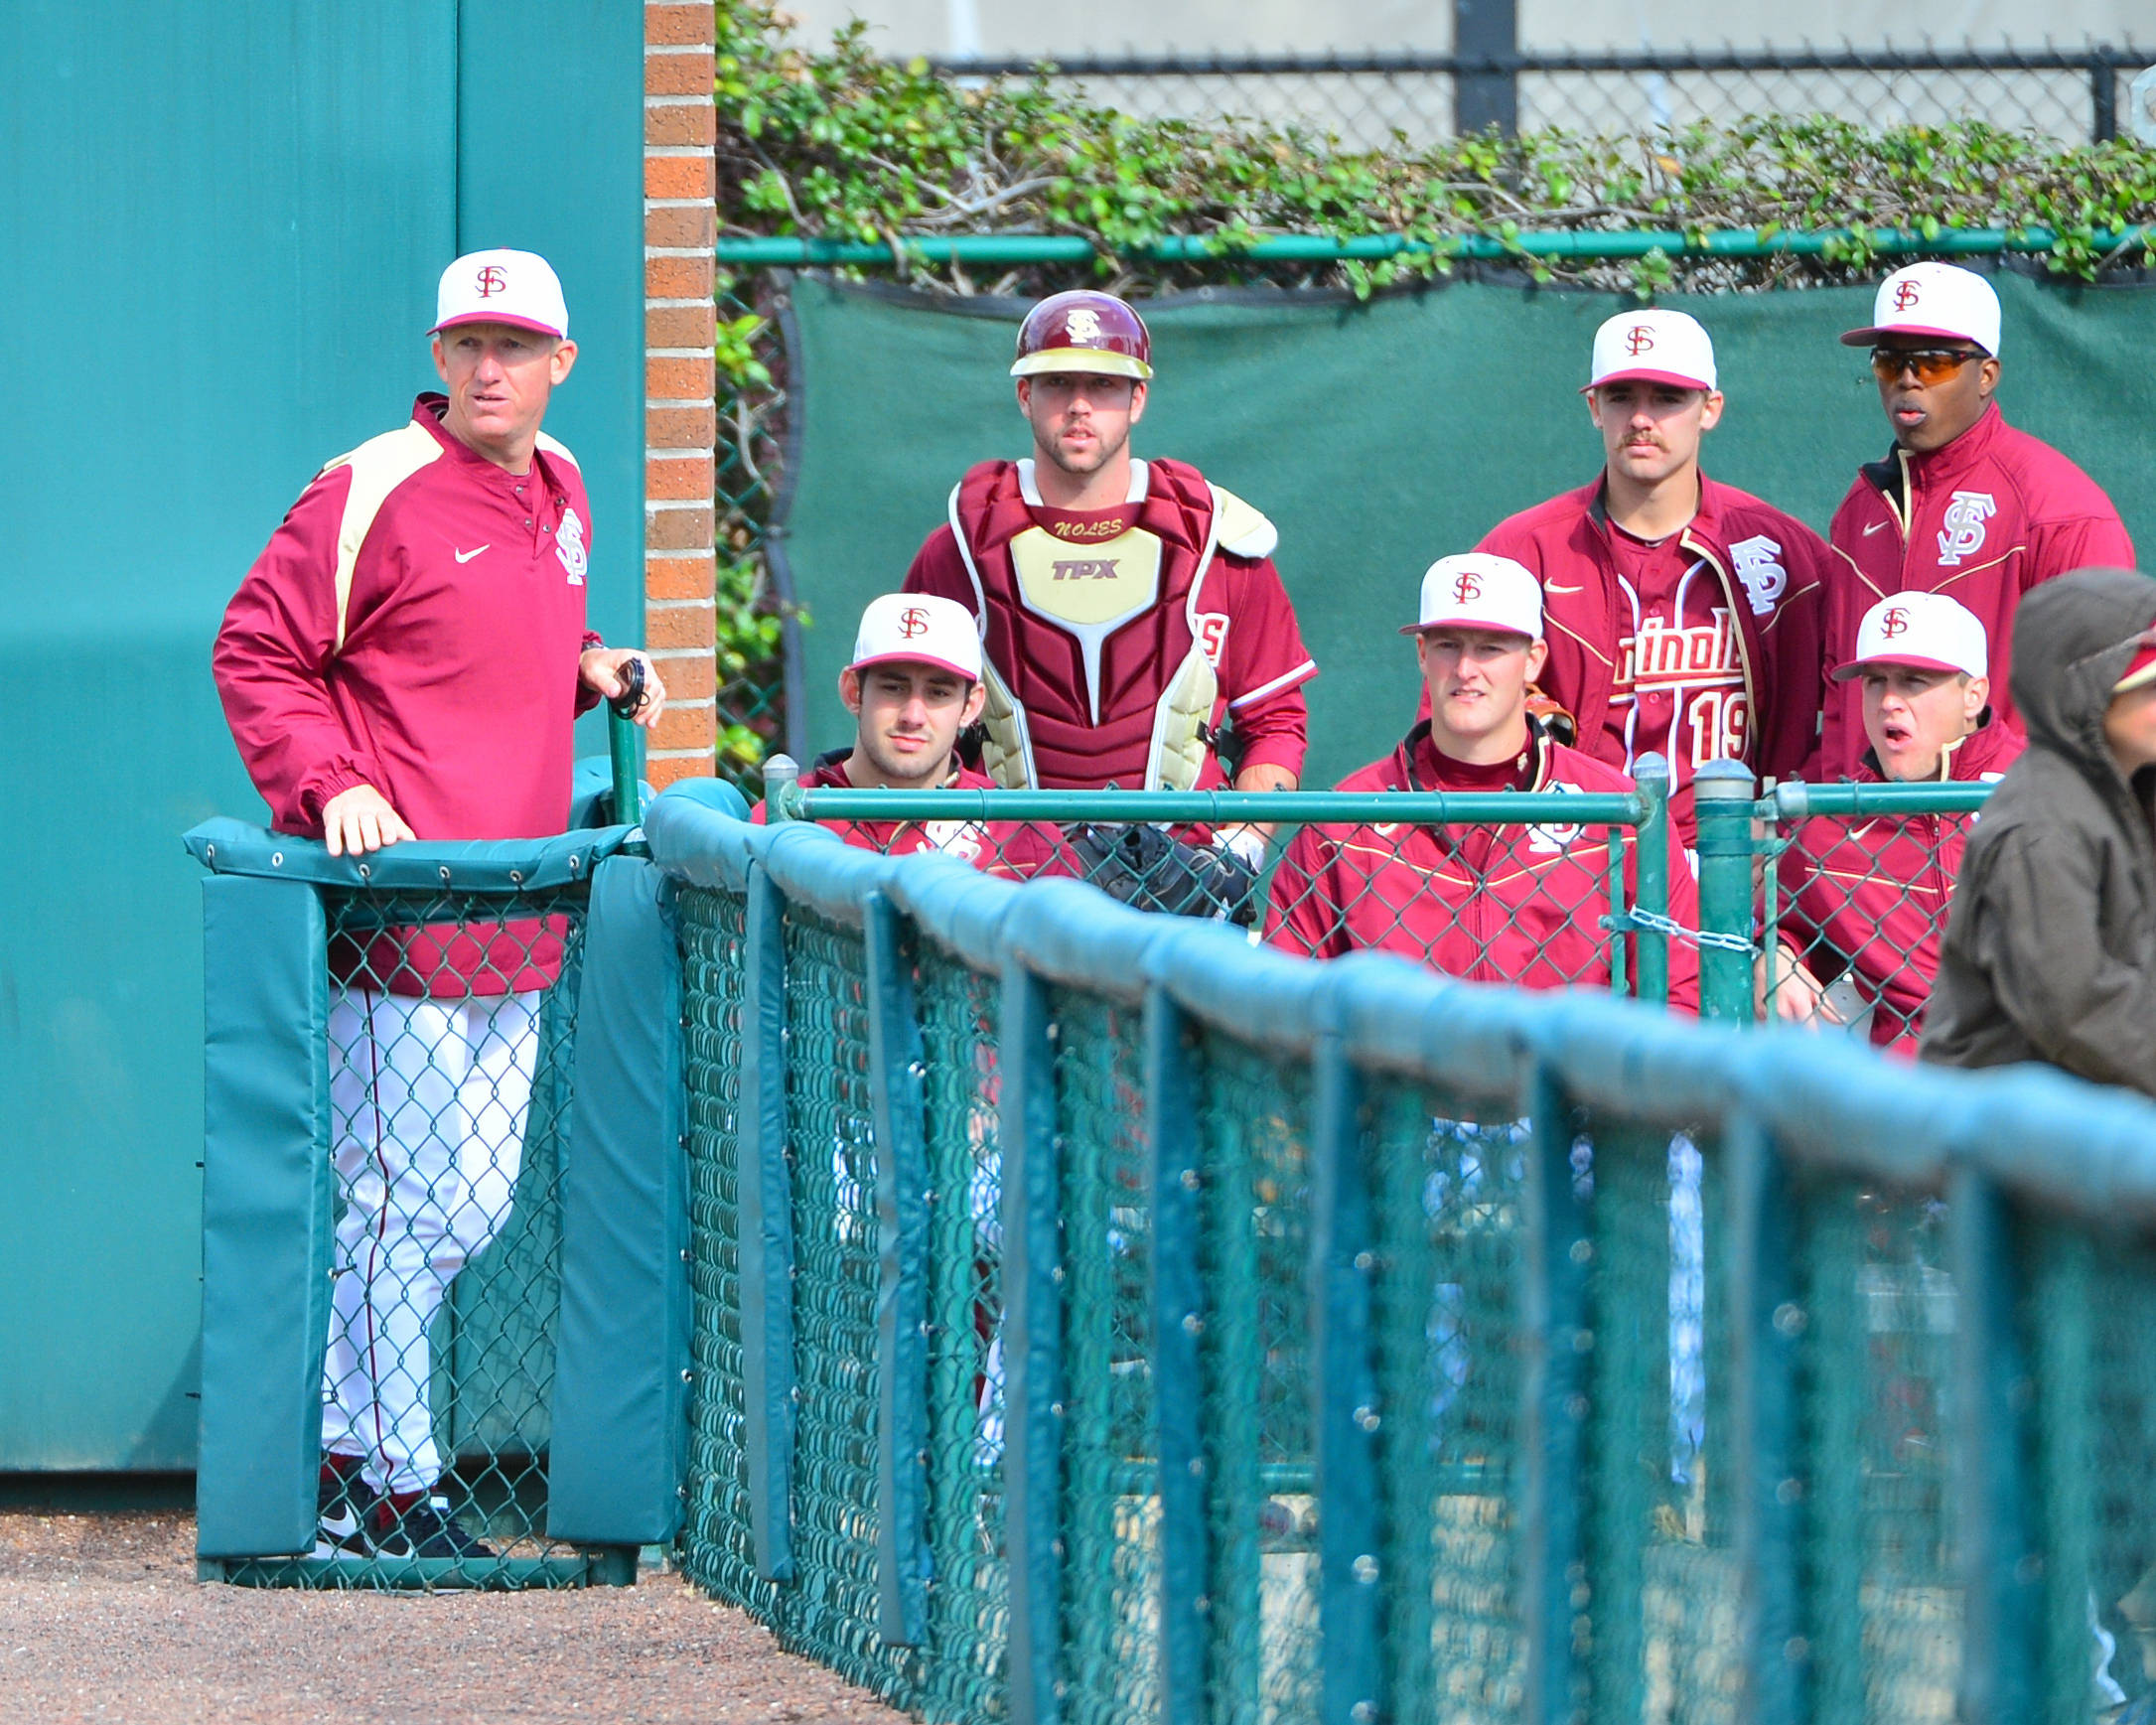 Associate head coach Mike Bell looks on from the bullpen with members of the Seminole pitching staff.